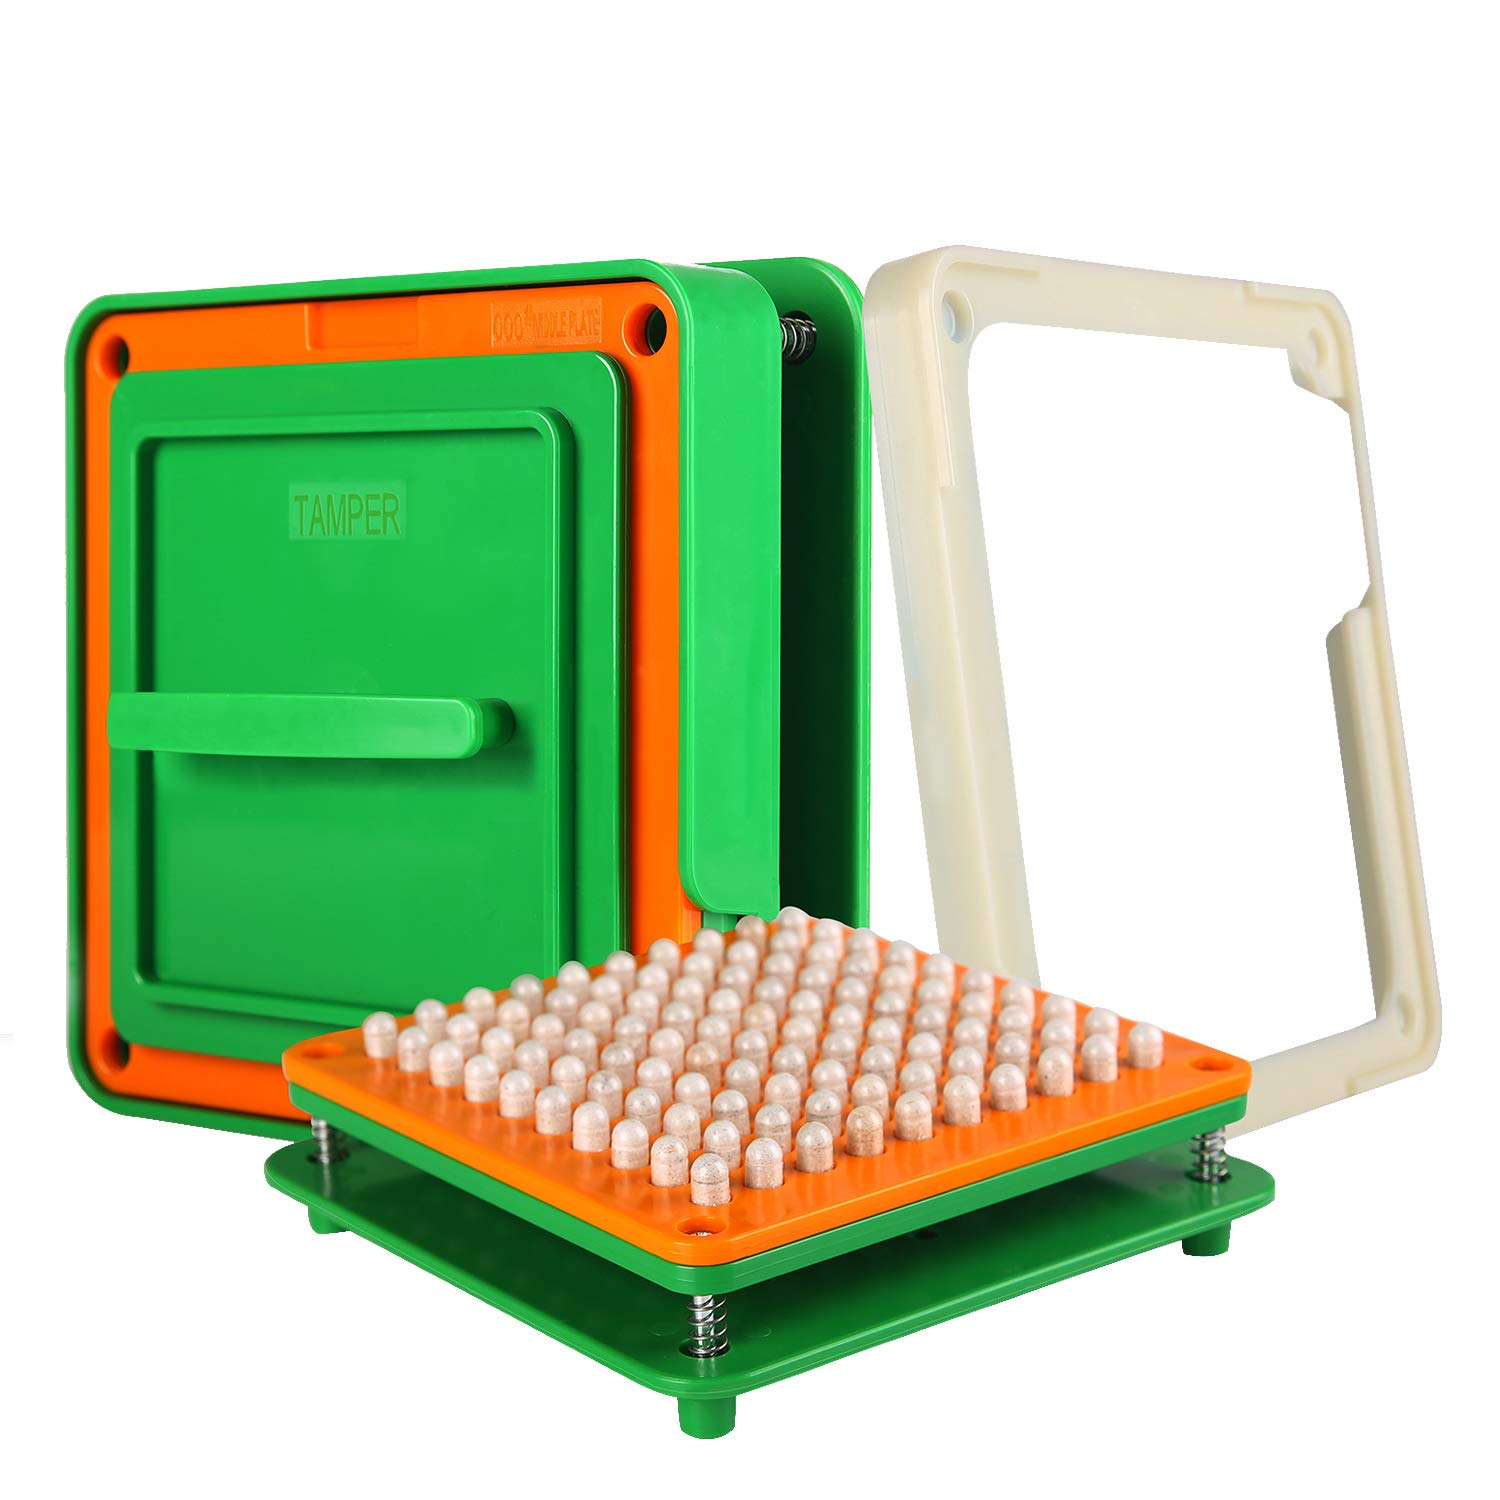 100 Hole (000#) Capsule Holder with Tamper for Size 000 Empty Capsules Holding Tray Pill Dispensers & Reminders -Green by wananfu (Image #1)